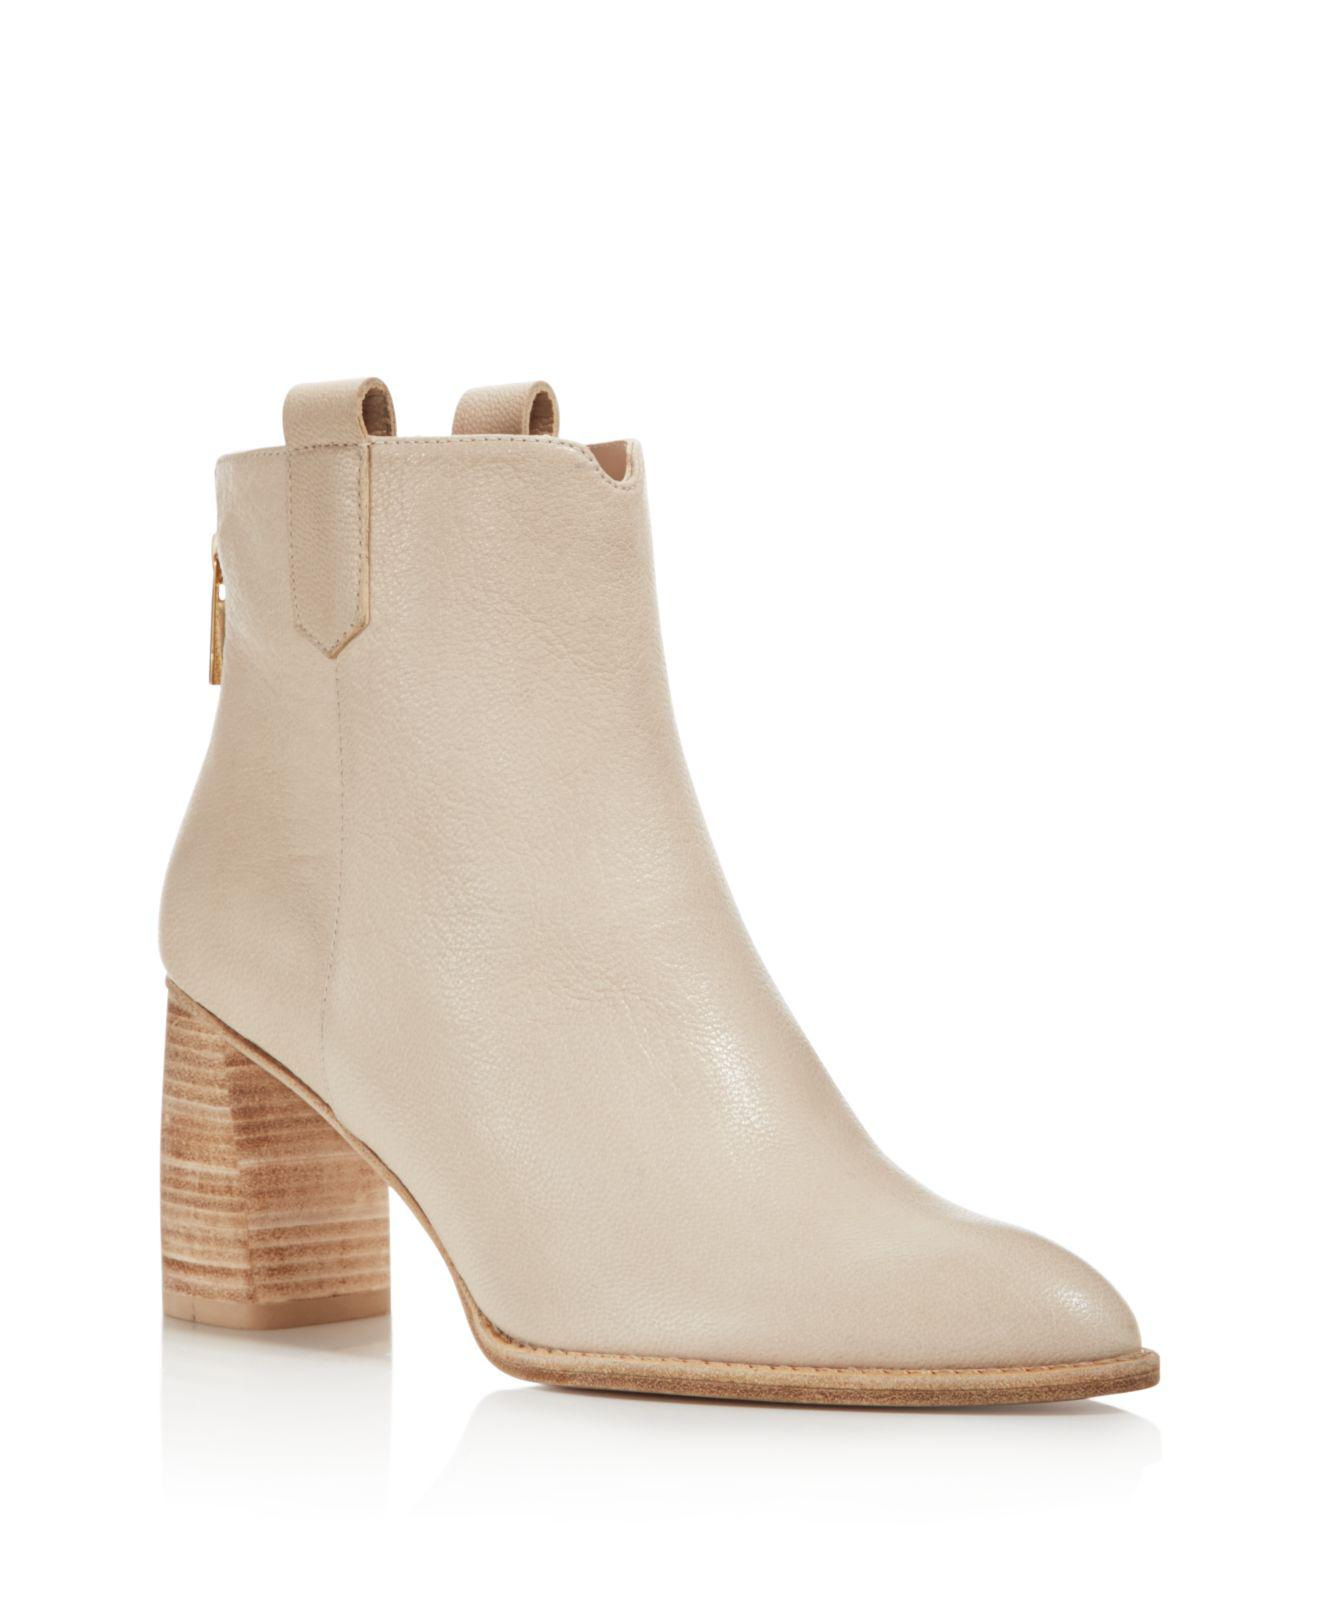 Stuart Weitzman Lofty Leather Booties Z0HbLfZs